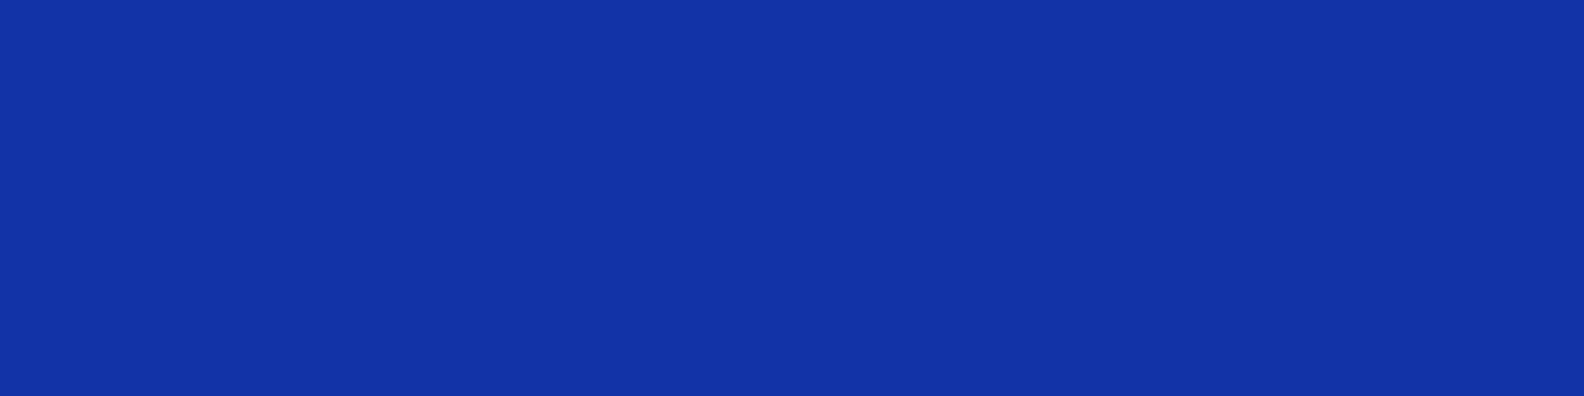 1584x396 Egyptian Blue Solid Color Background